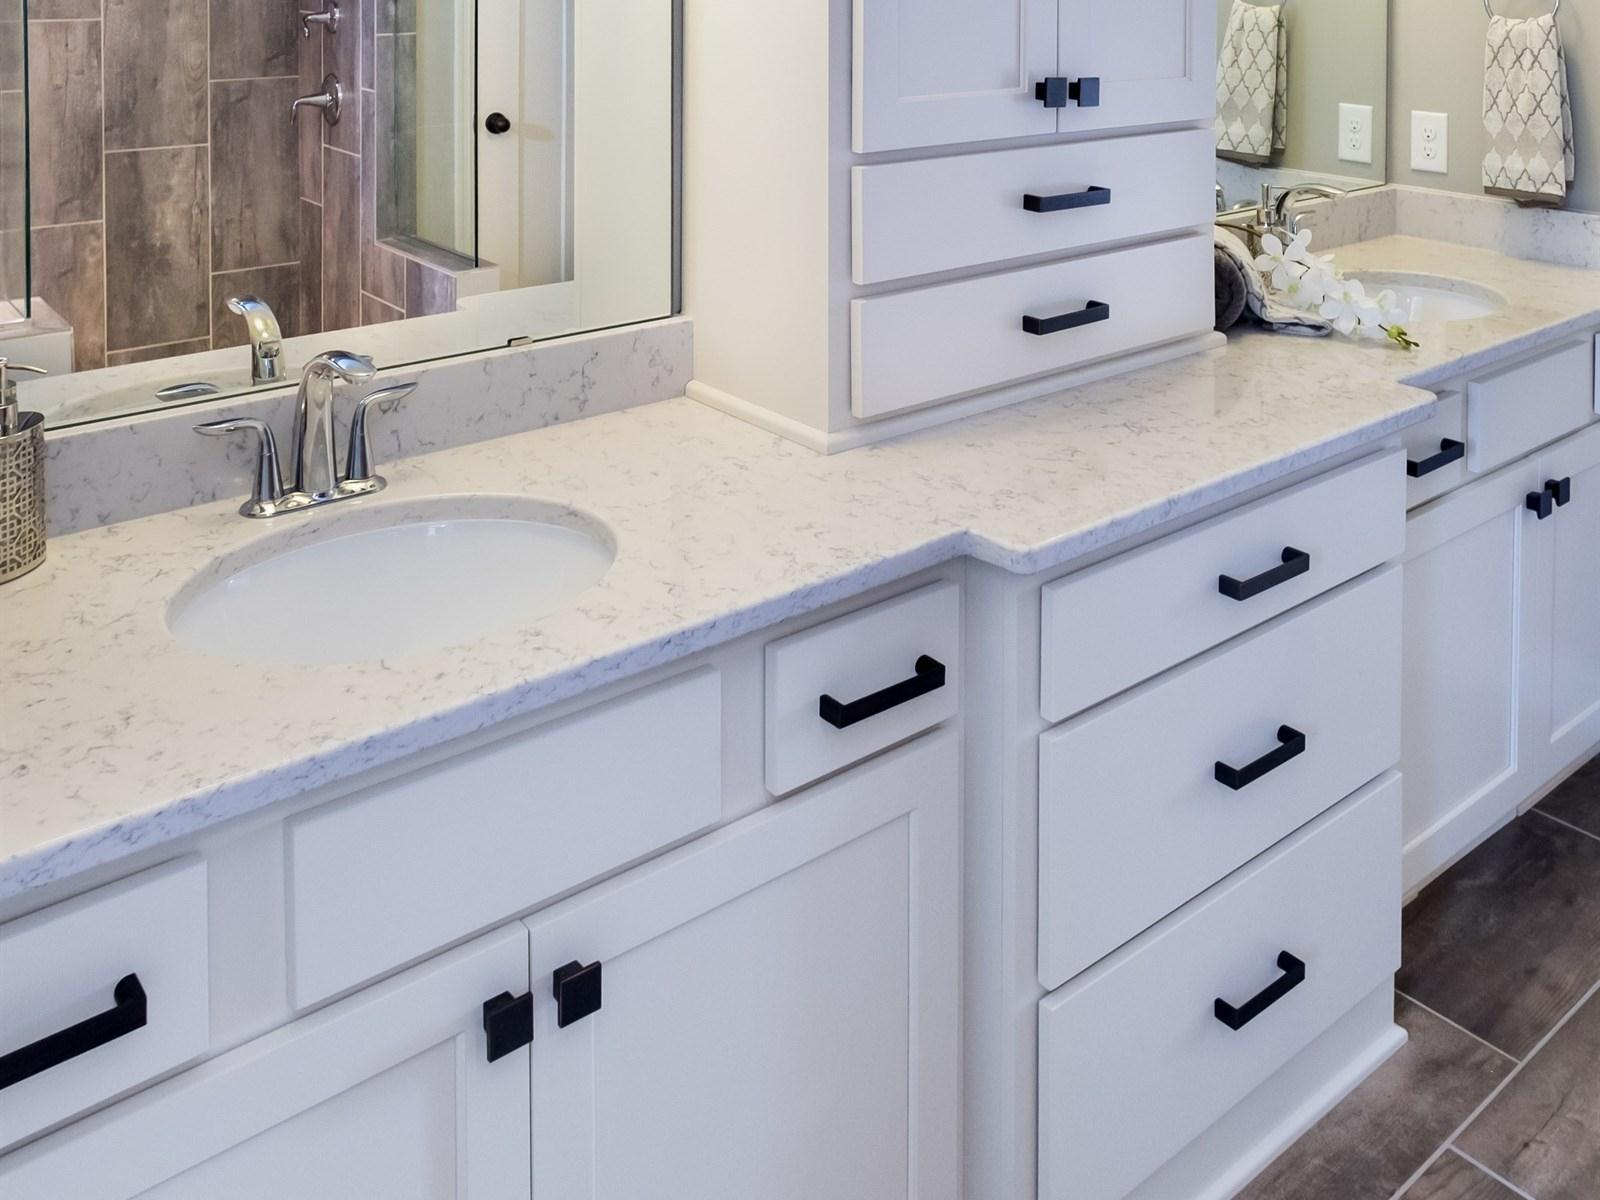 Bathroom featured in The Eastridge  By Brandl Anderson in Minneapolis-St. Paul, MN